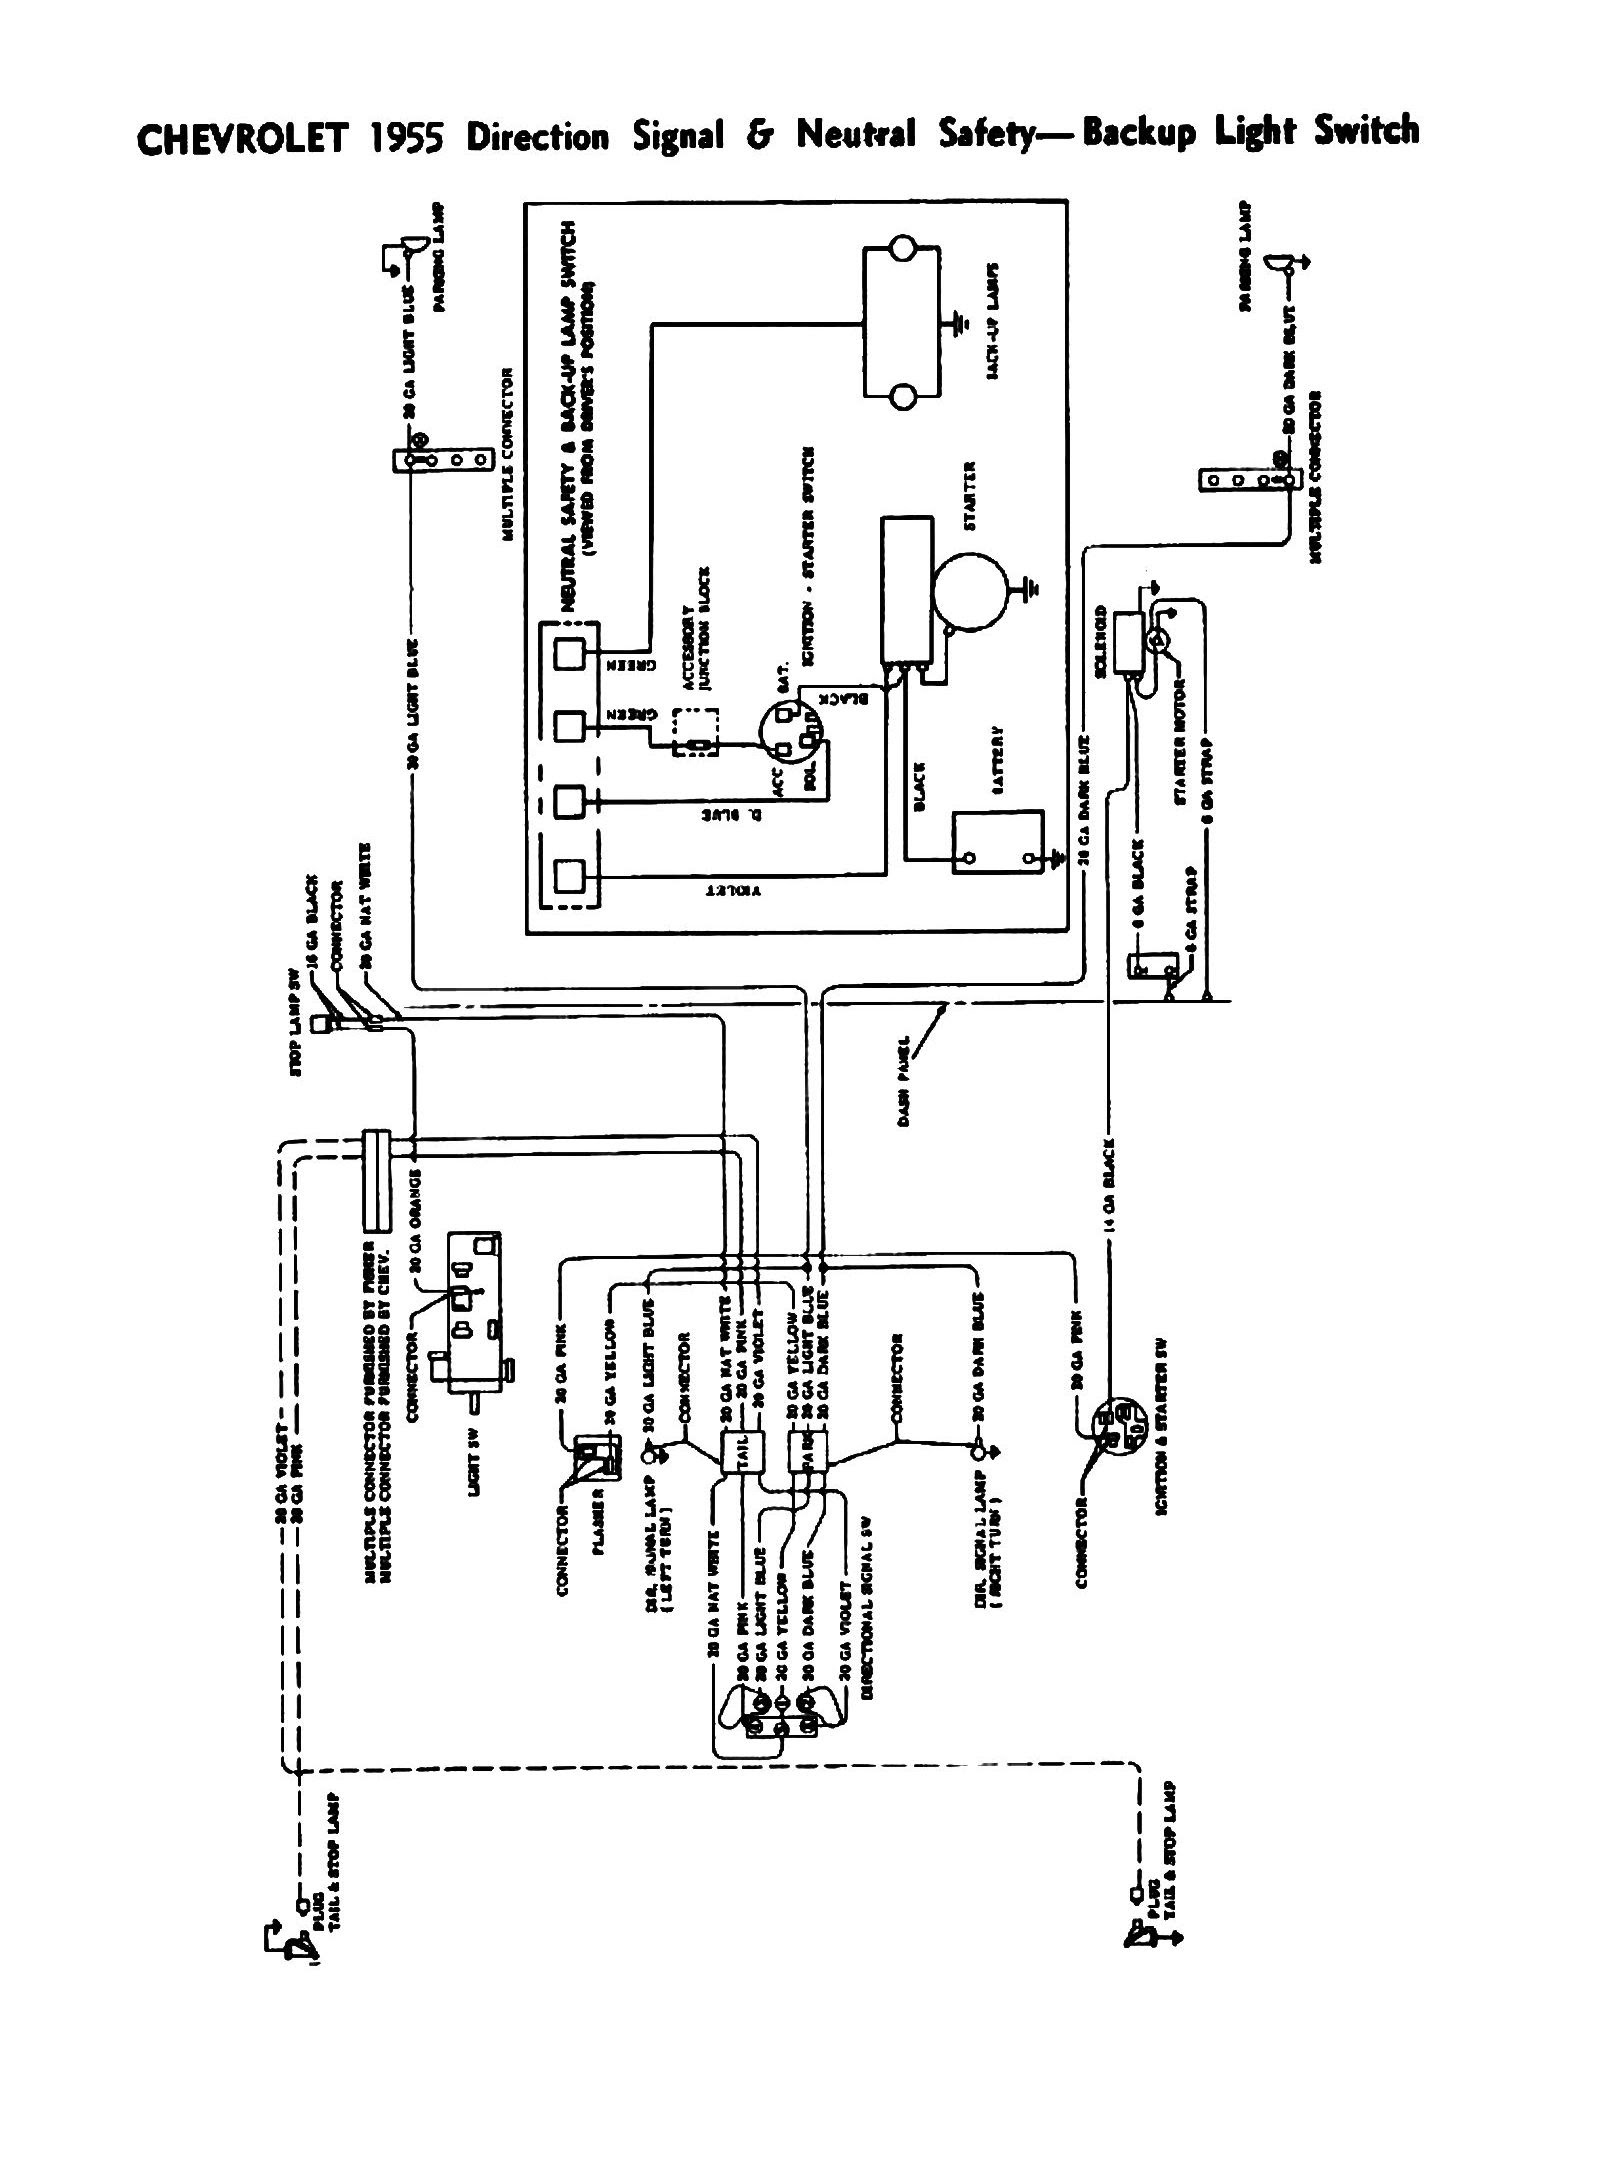 1978 C10 Ignition Wiring Diagram - 1979 Xs1100 Wiring Diagram Free Picture  Schematic - caprice.yotube-dot-com-ds17.pistadelsole.it | 1981 Camaro Starter Wiring Diagram Gm Performance |  | Pista del Sole